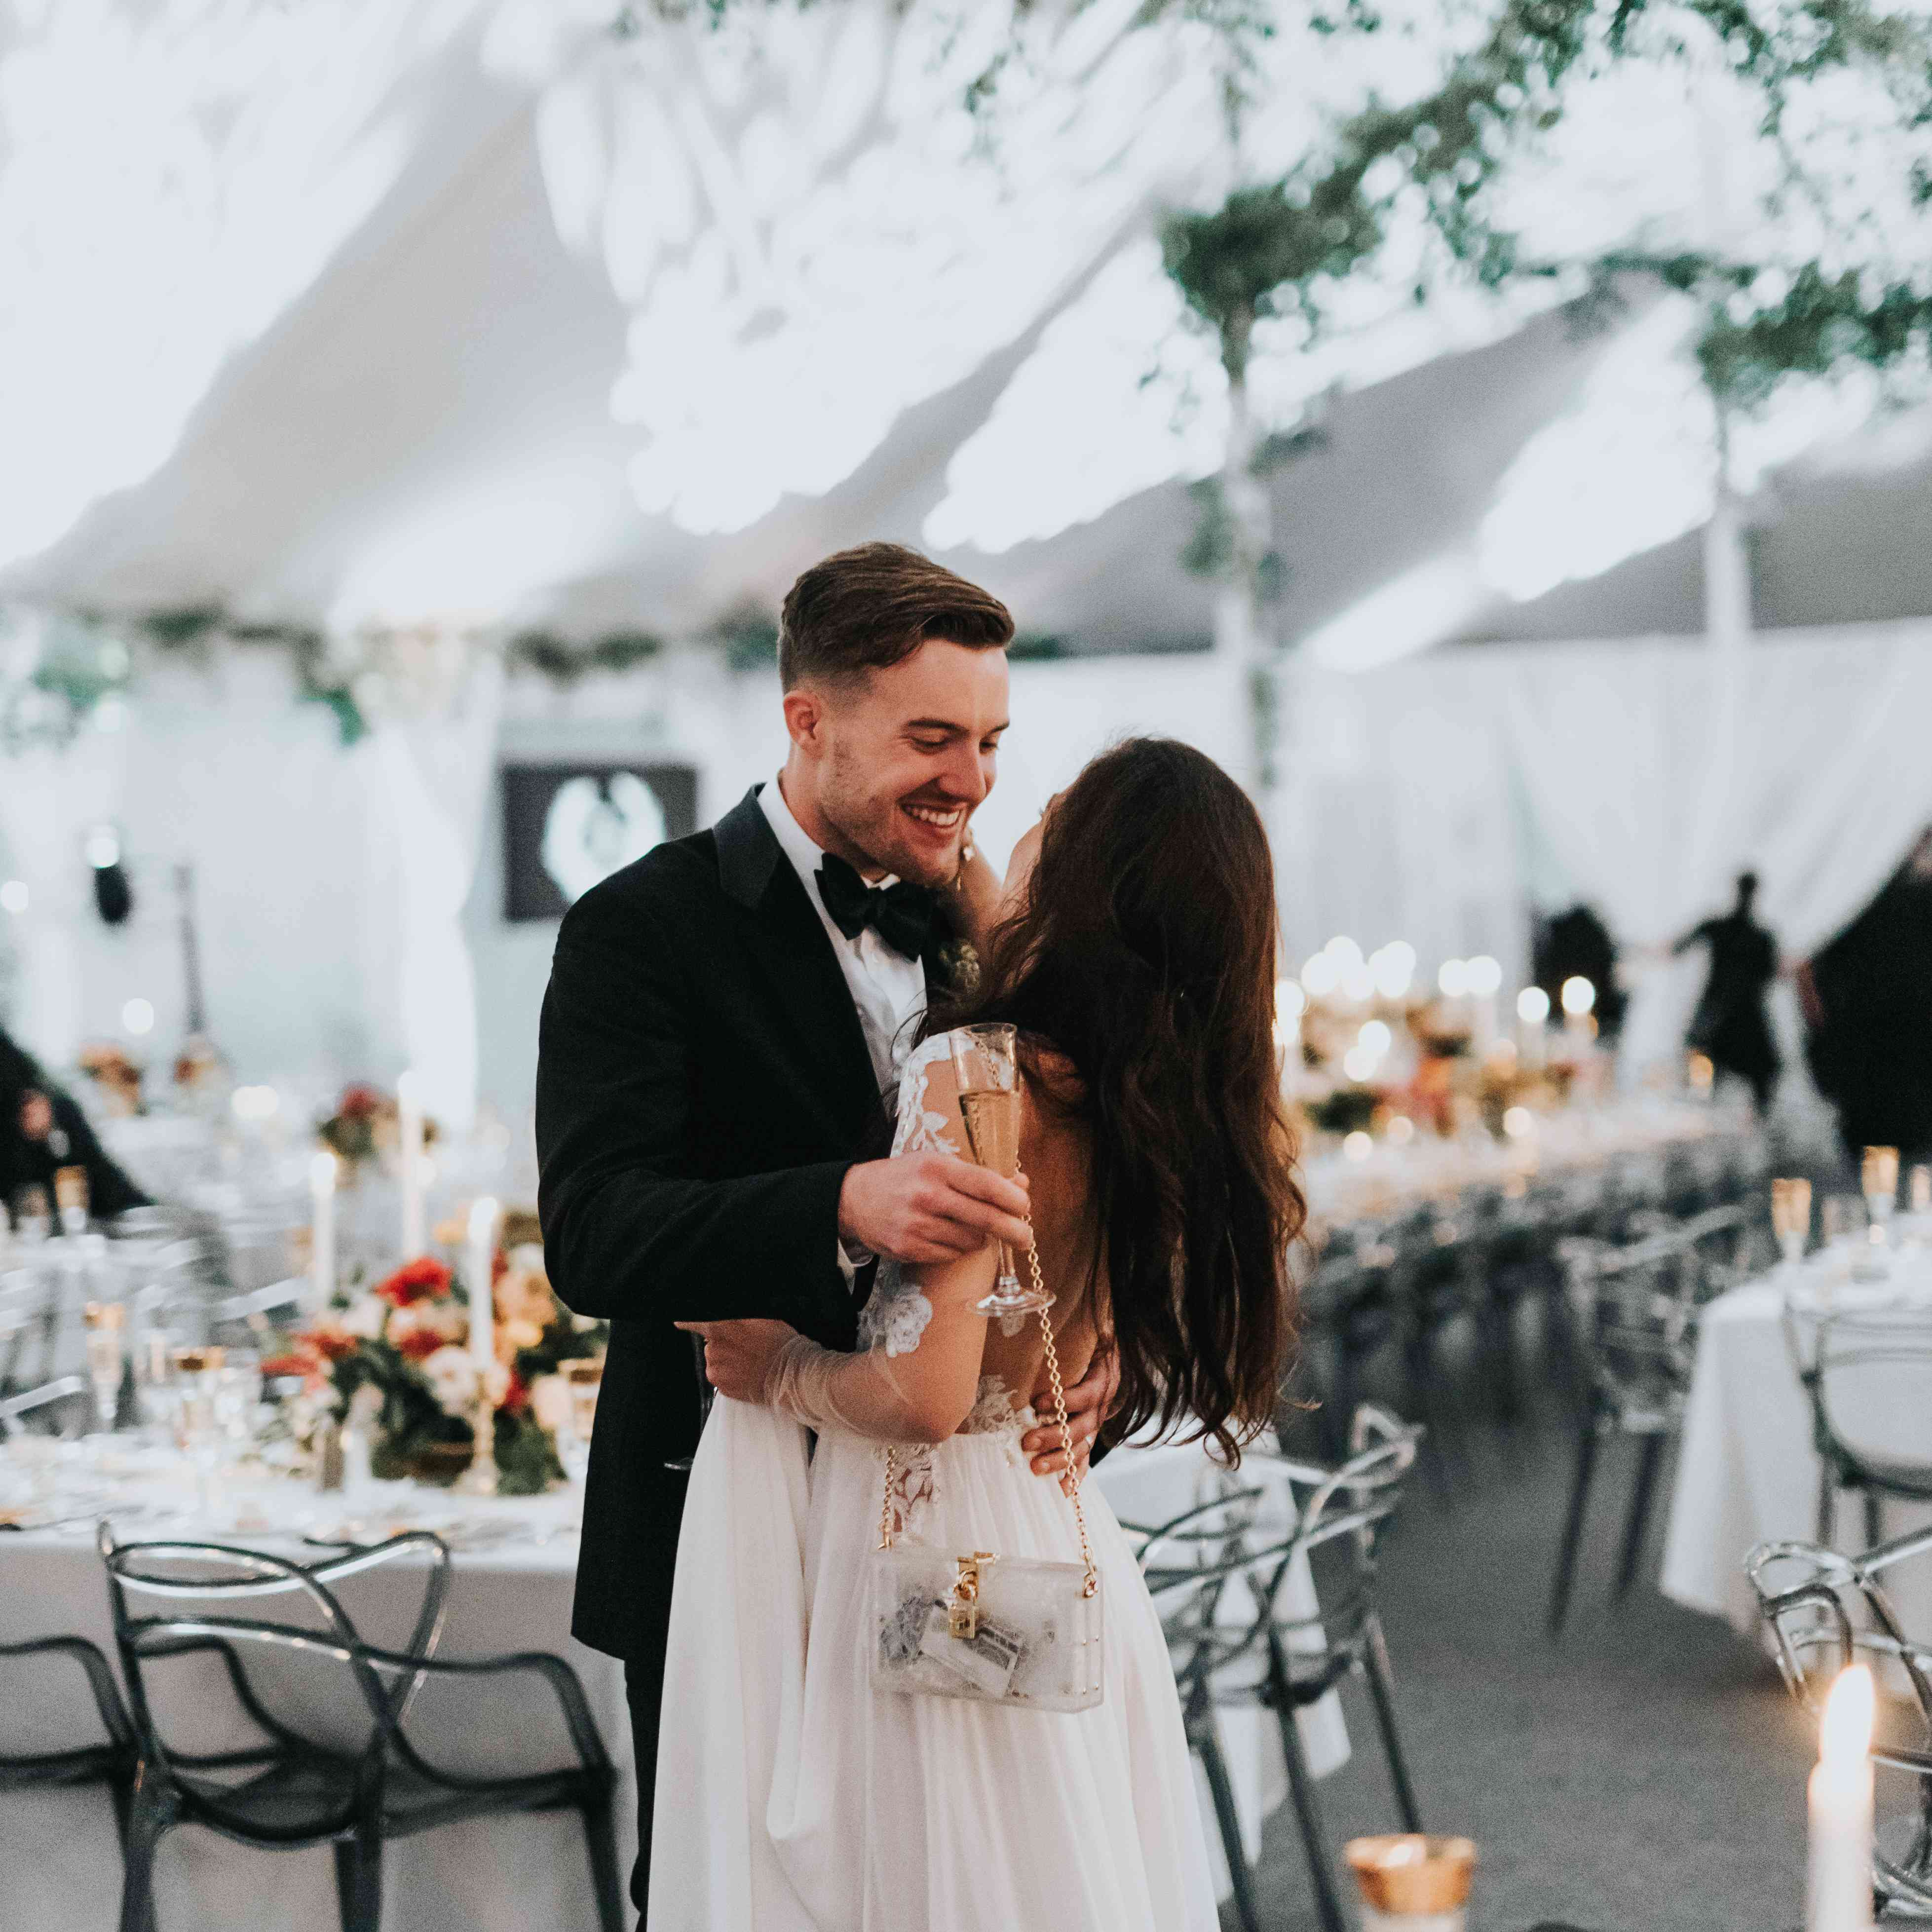 personalized michigan wedding, bride and groom at reception